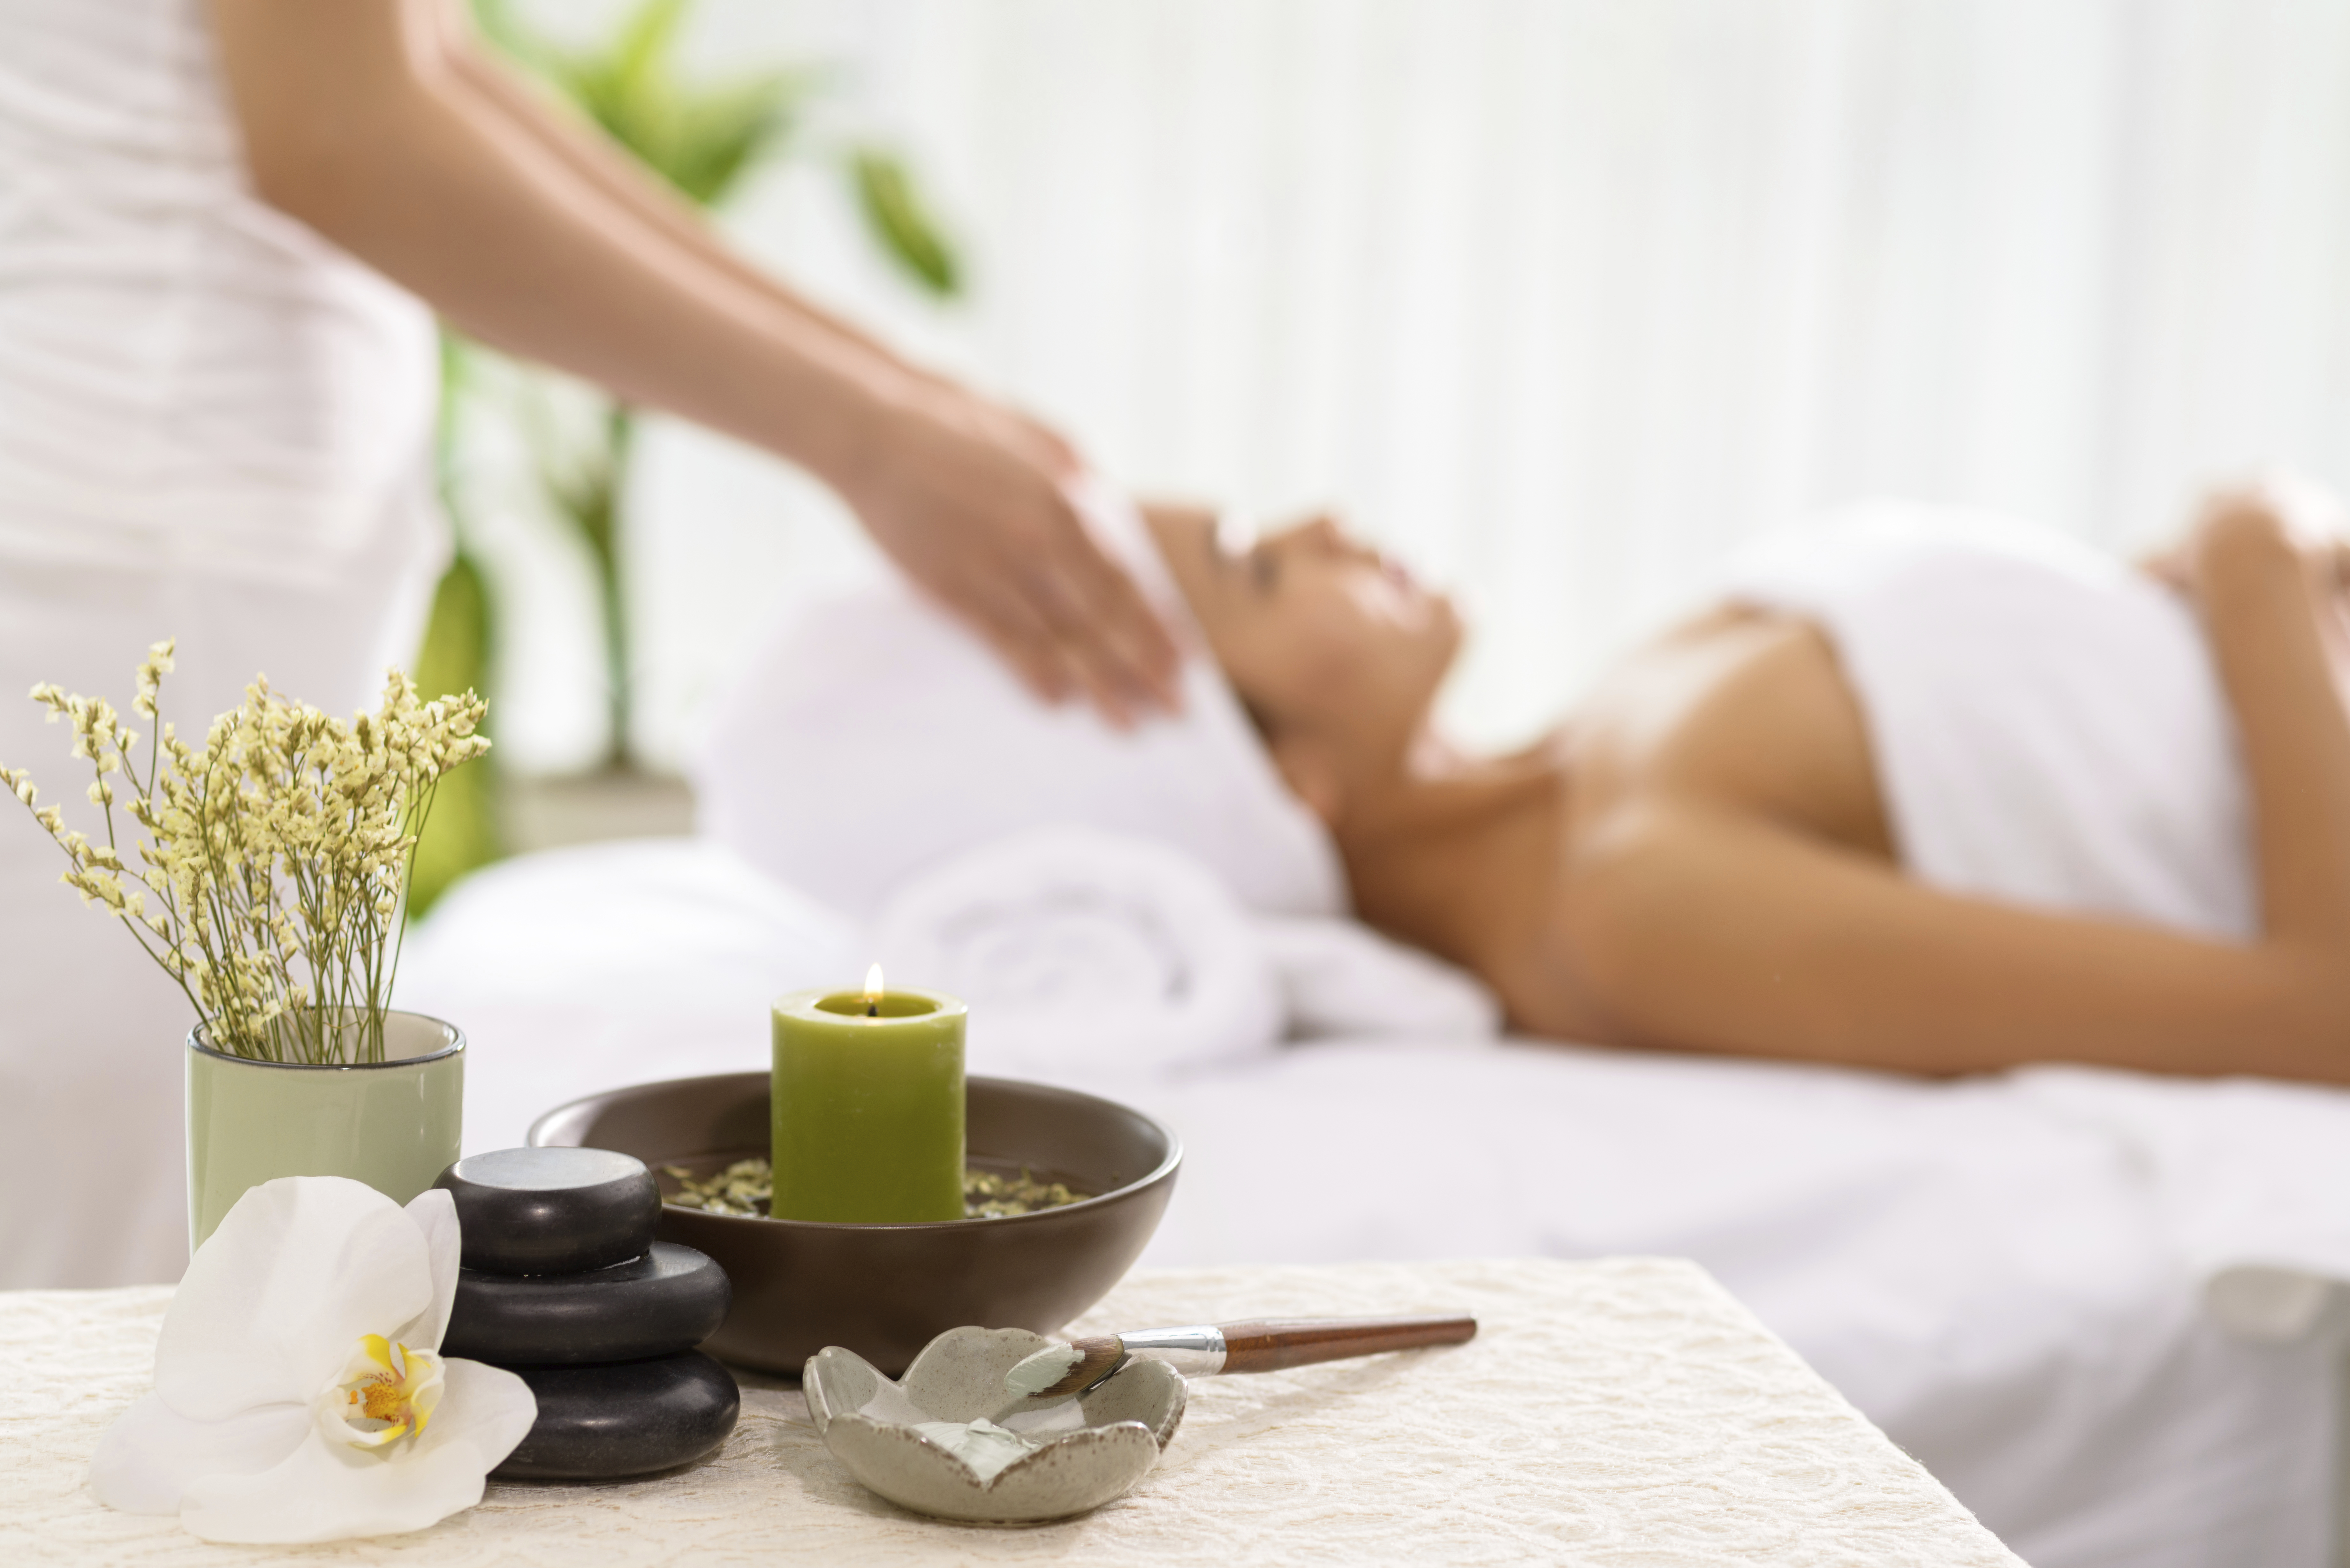 Spa  5 New Spa Treatments to Try This Year